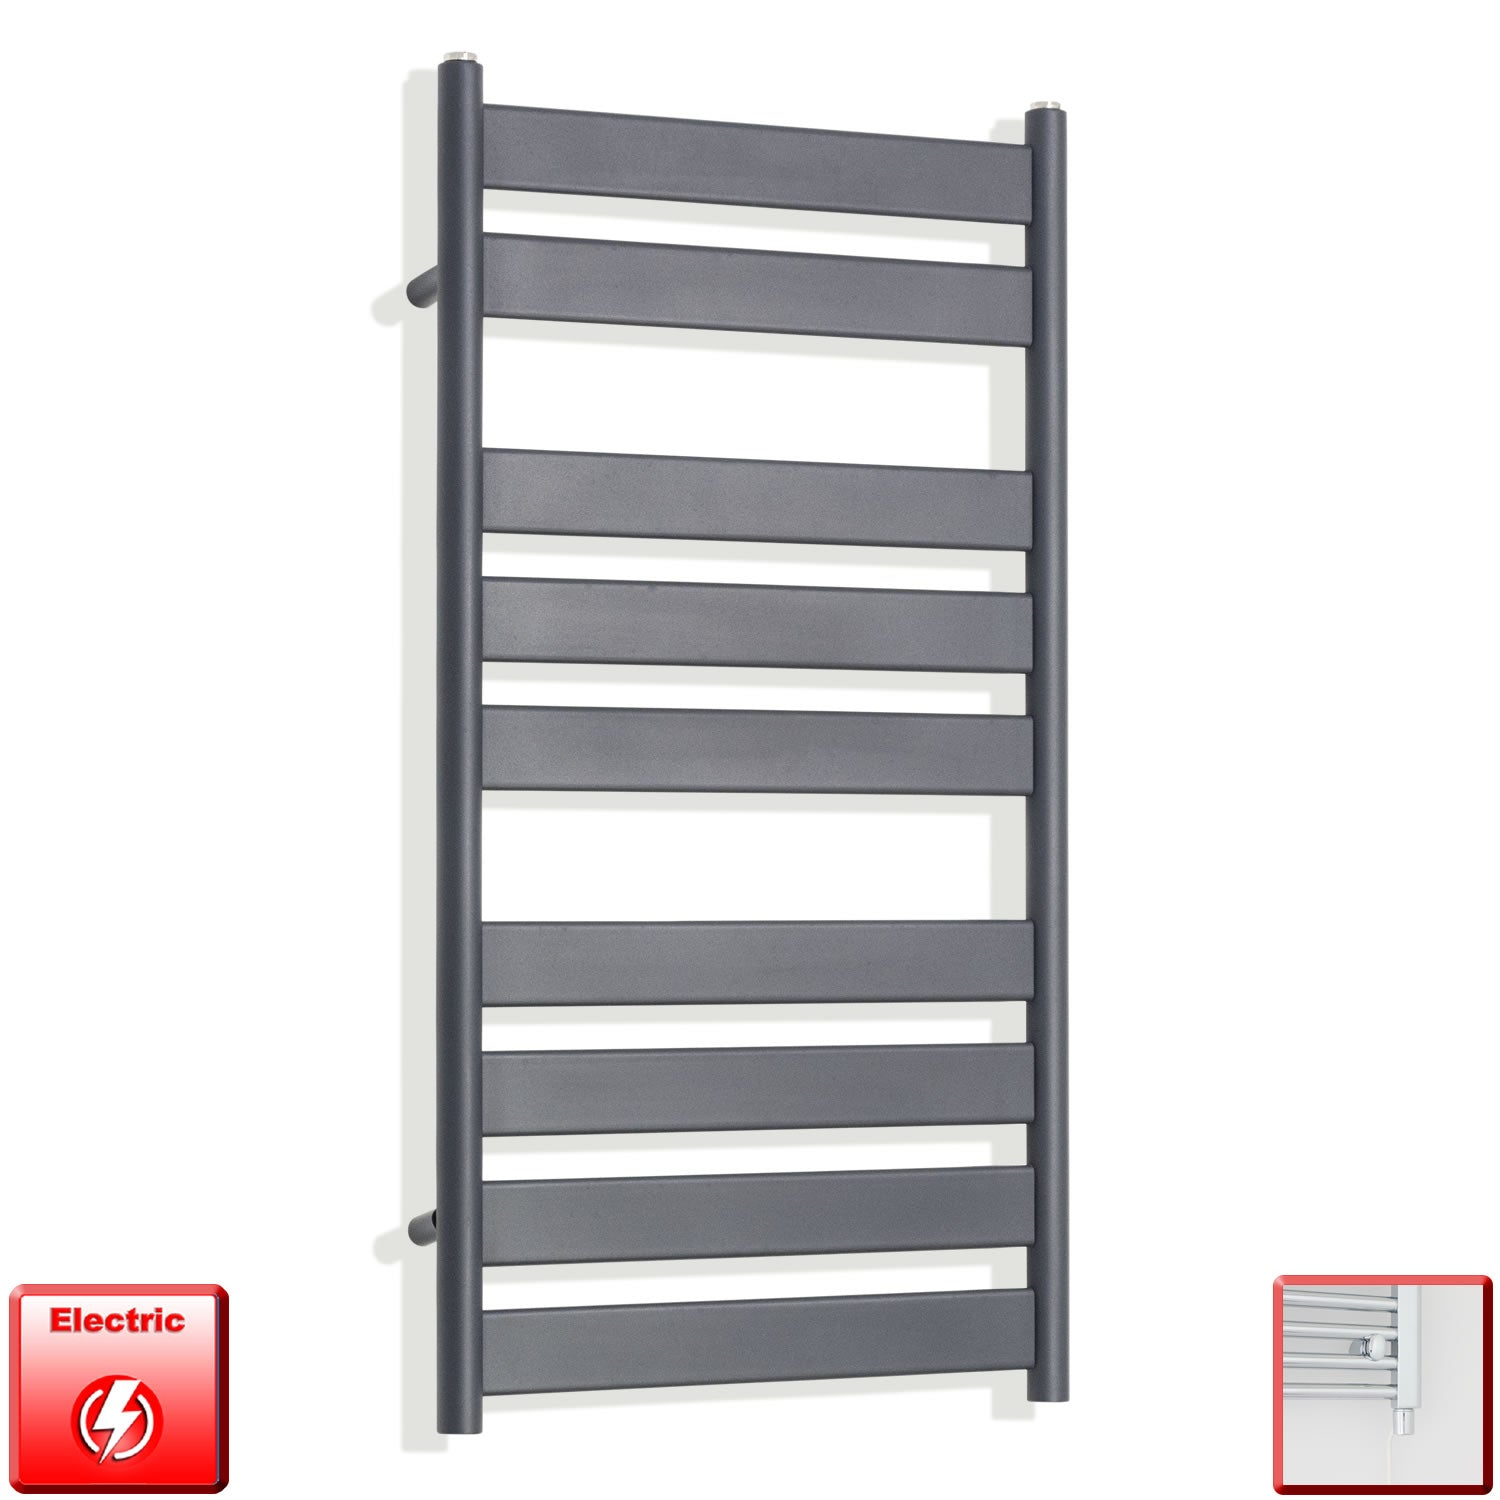 950 x 500 mm Anthracite Heated Flat Panel Towel Rail Radiator Electric pre-filled single heat element